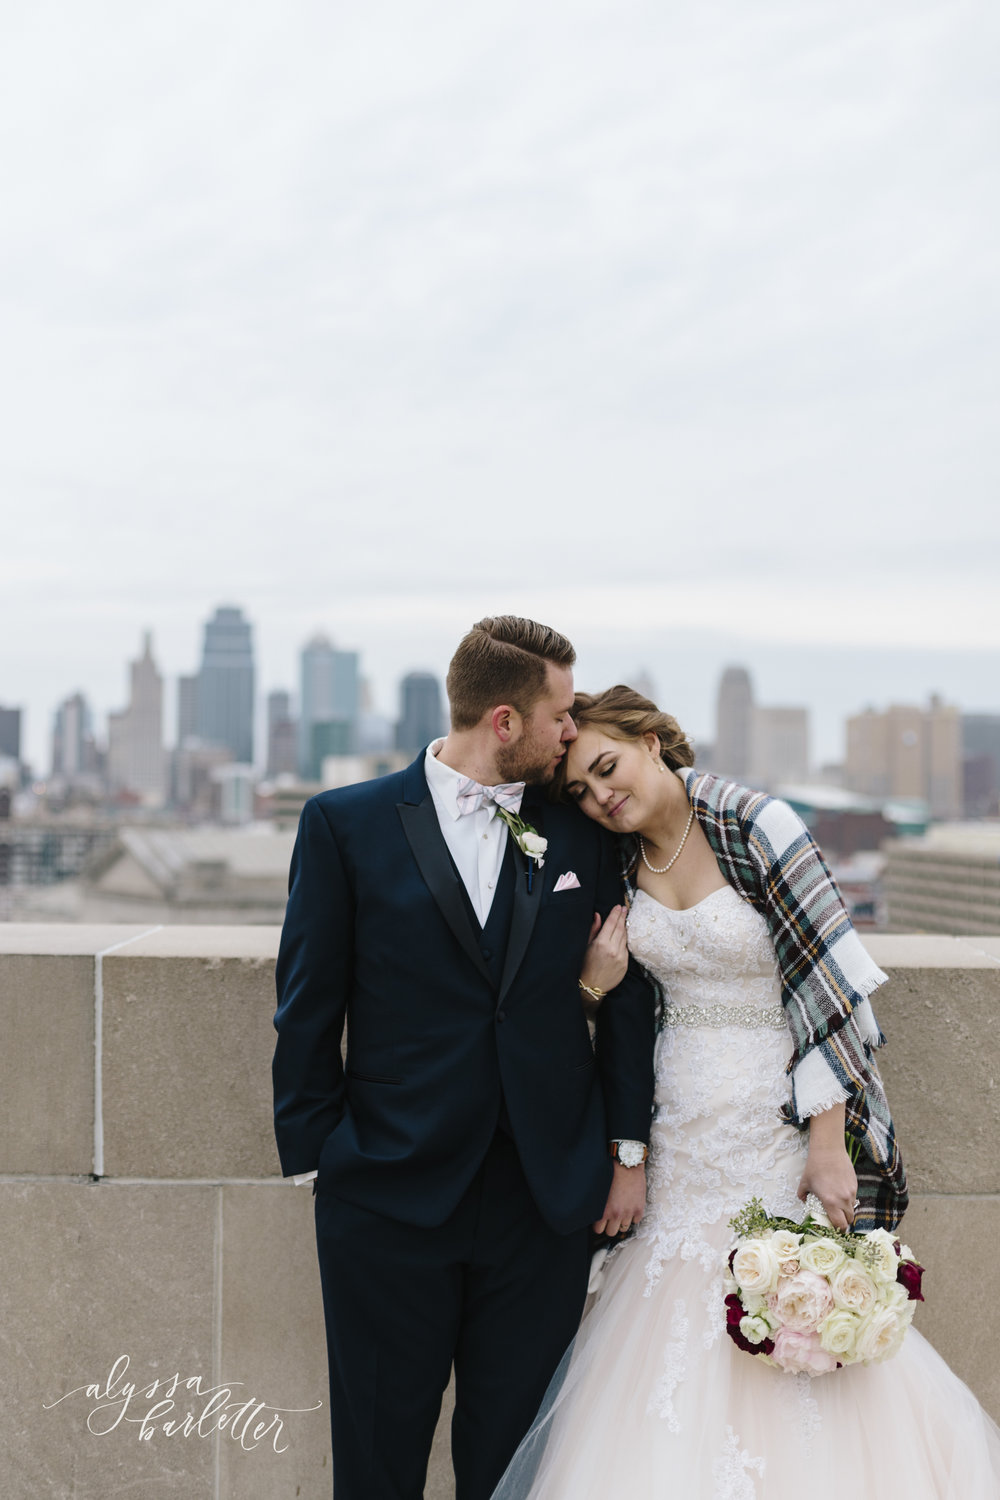 alyssa barletter photography kansas city winter wedding studio dan meiners pennway place jennie and dave-1-21.jpg